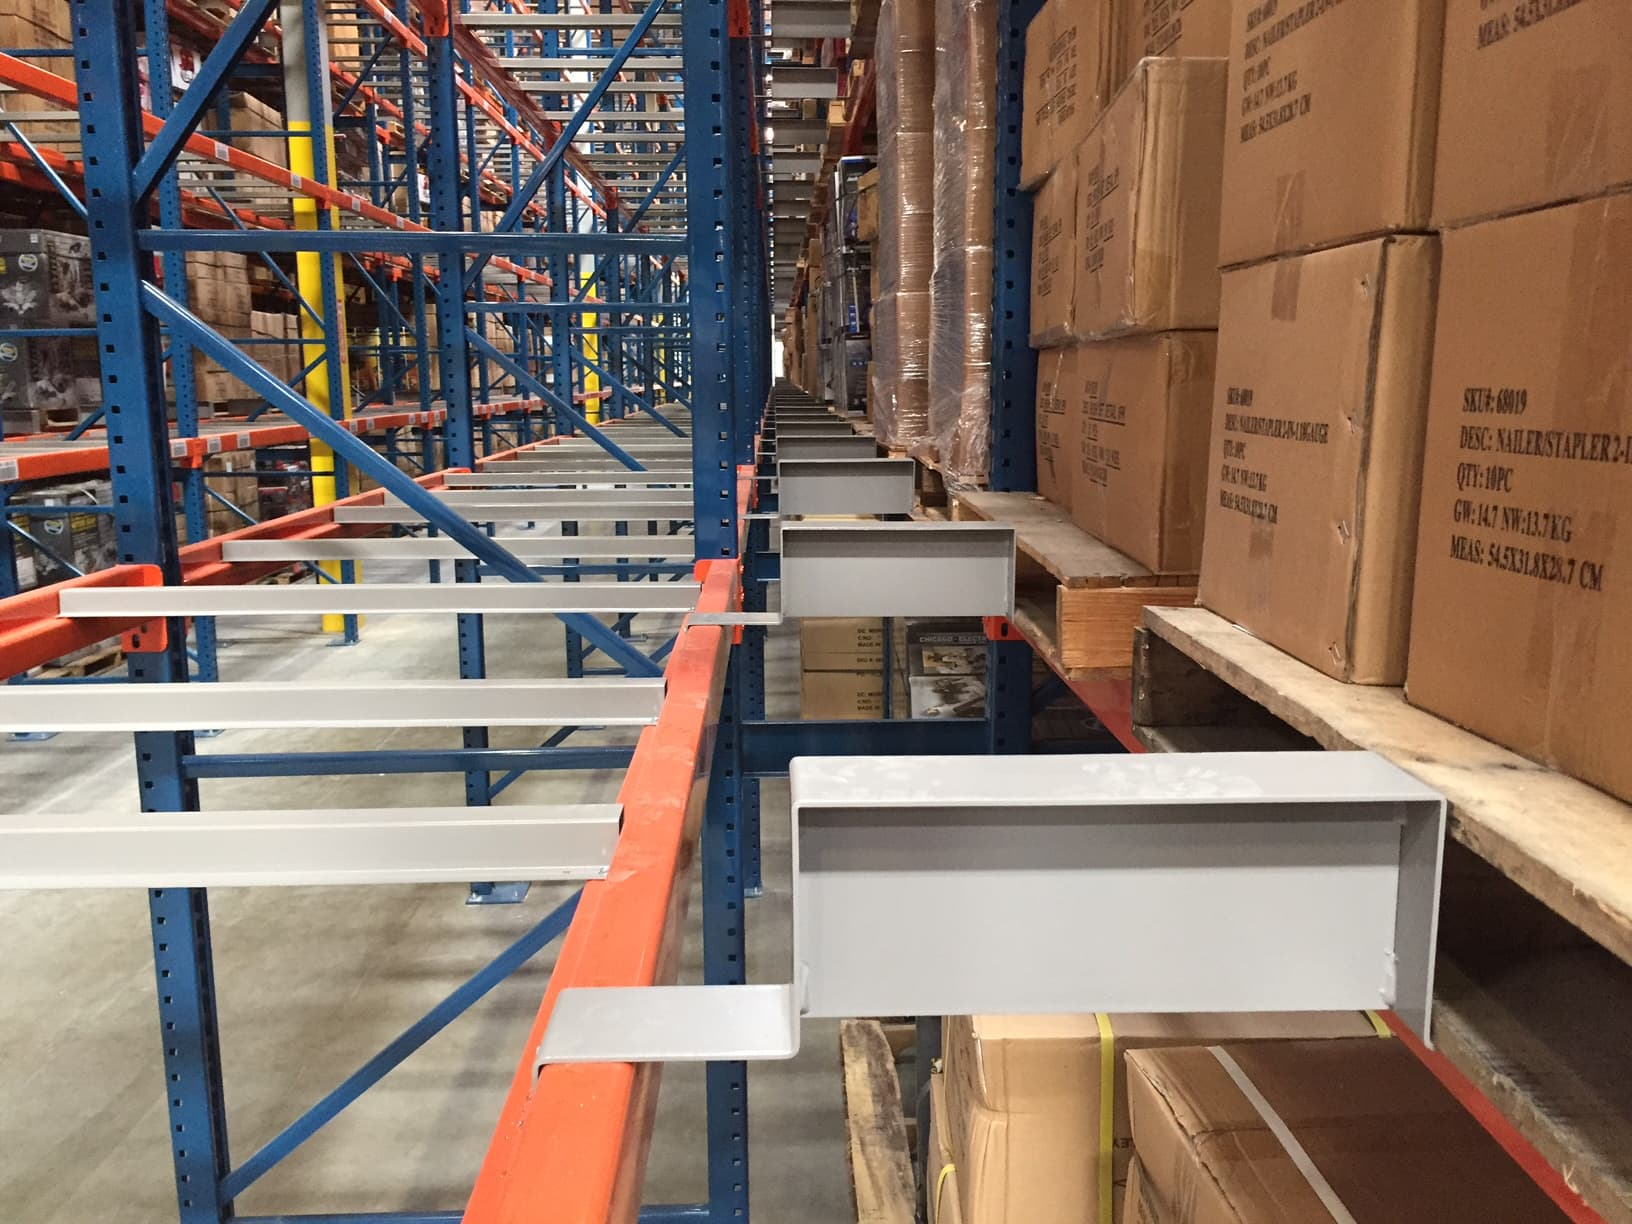 Flue Space For Back To Back Warehouse Pallet Shelving